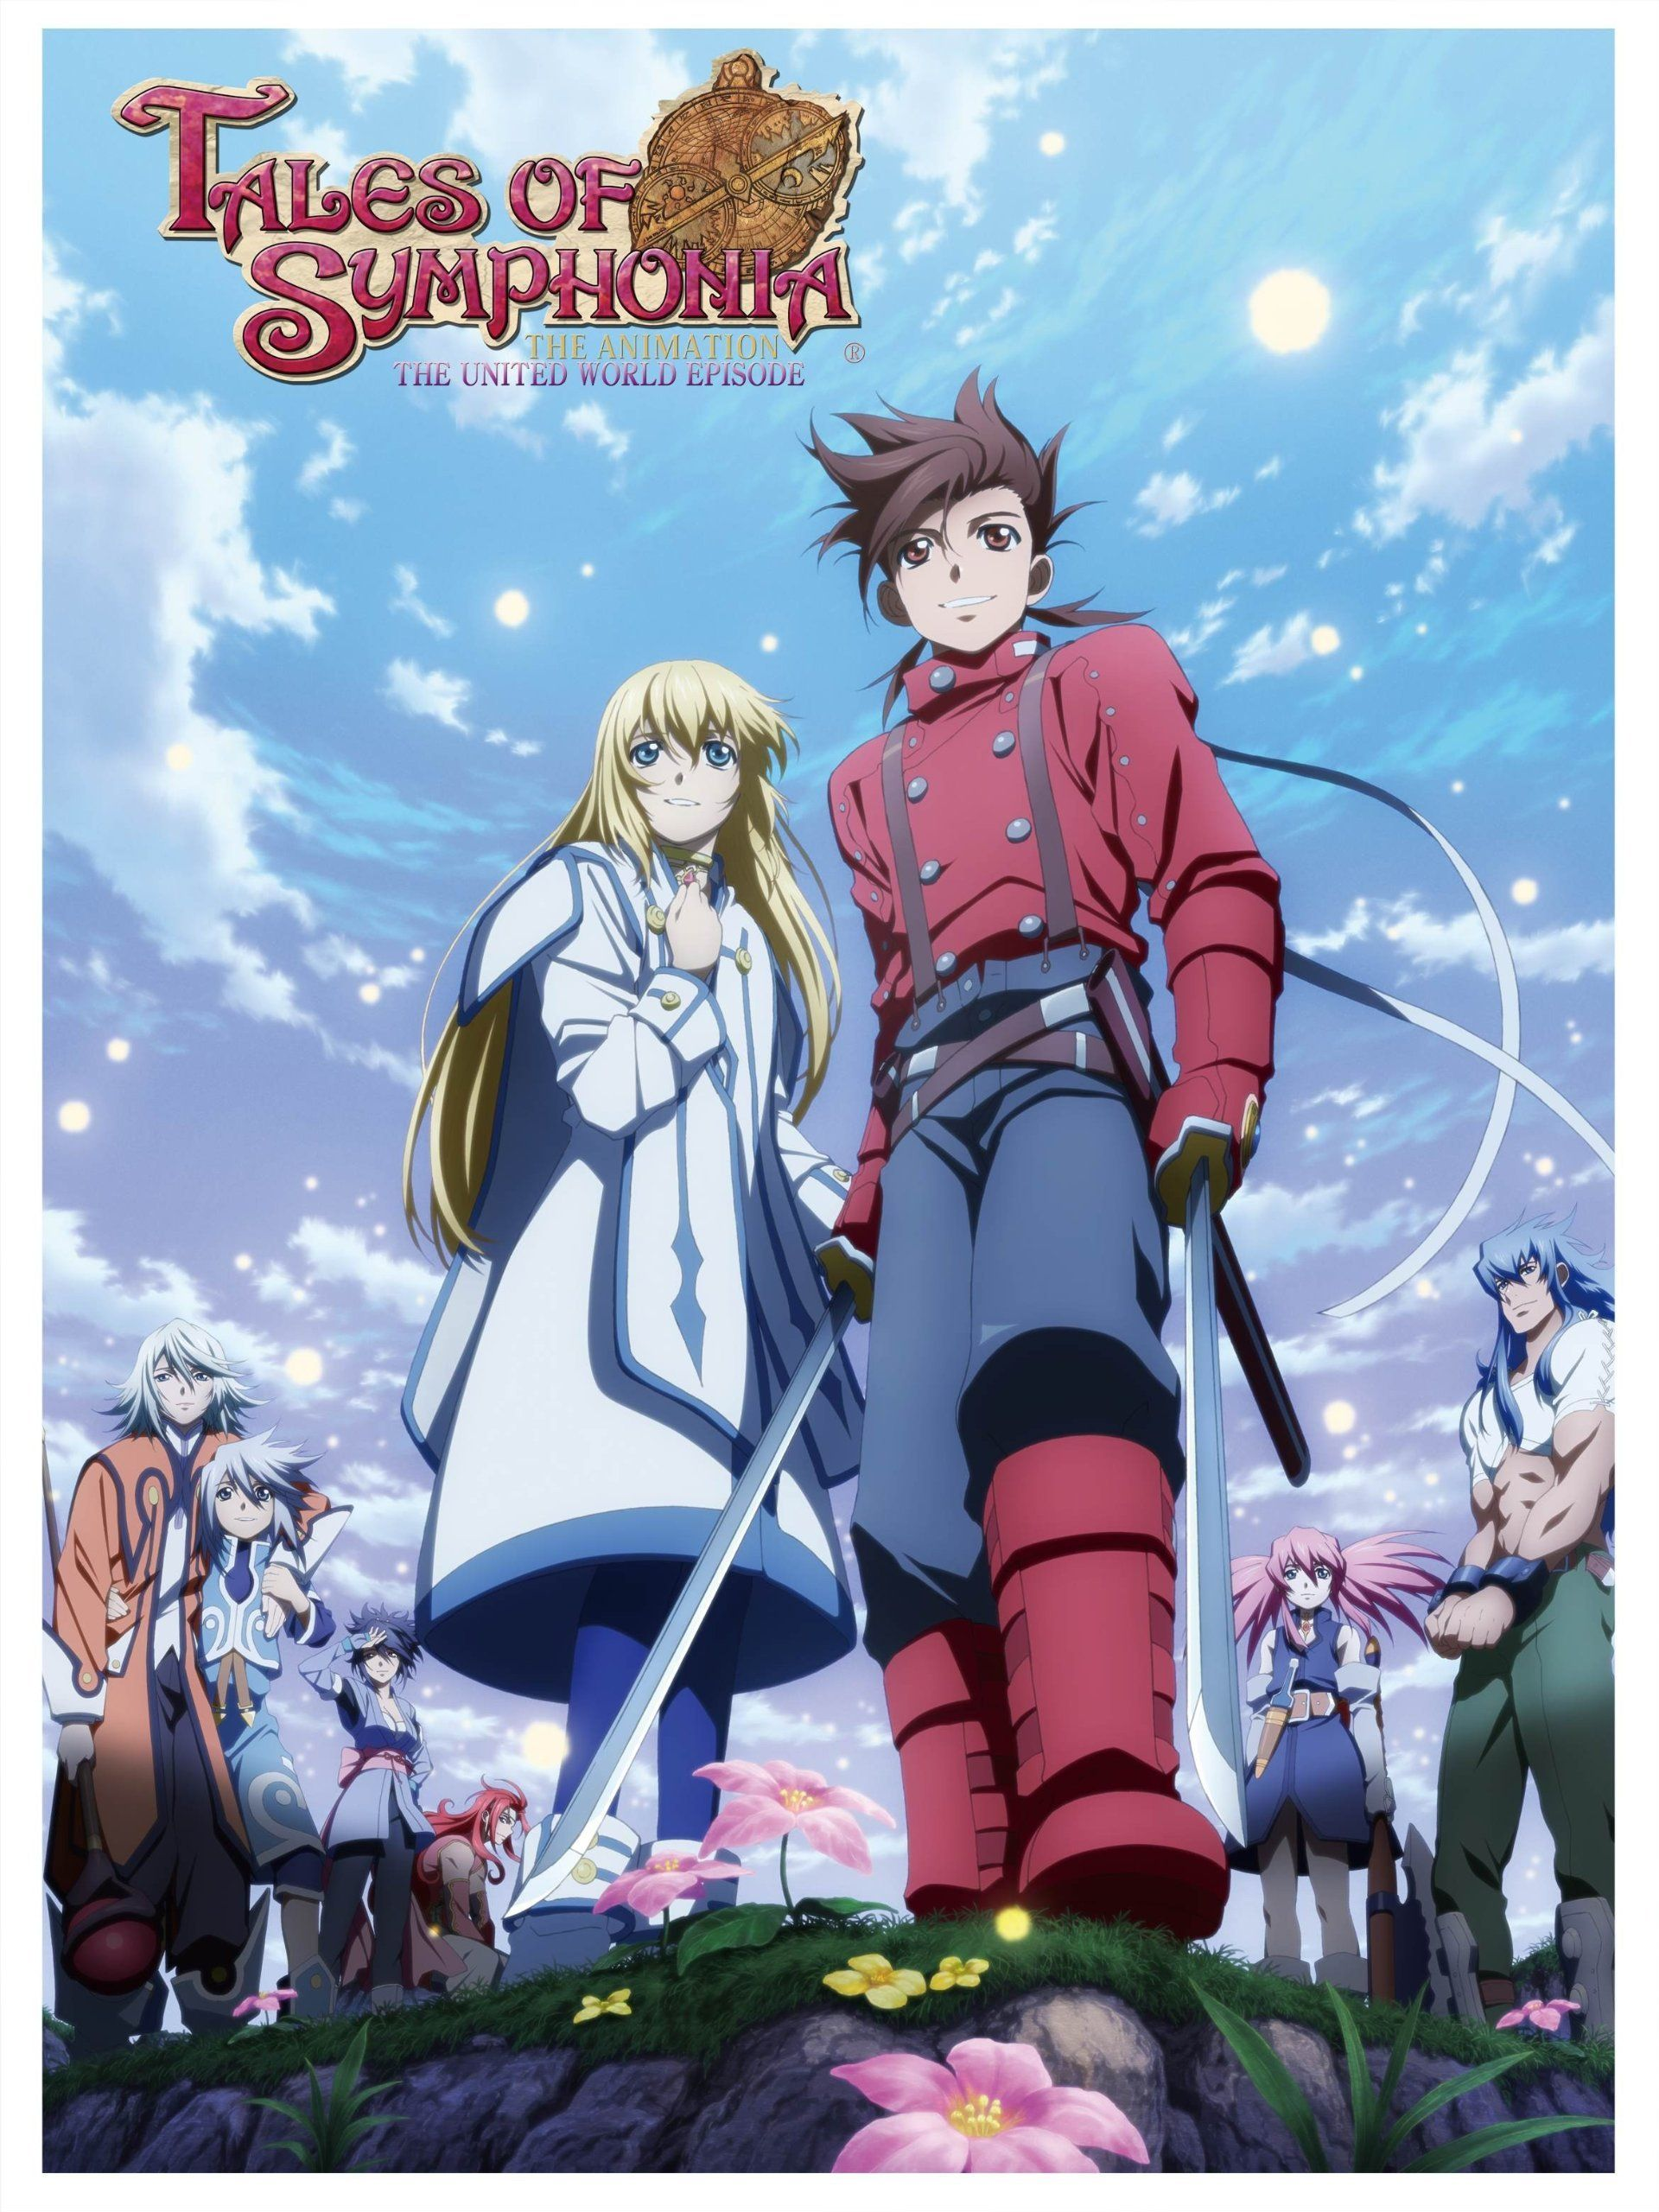 Tales of Symphonia best RPG game of the early 2000's